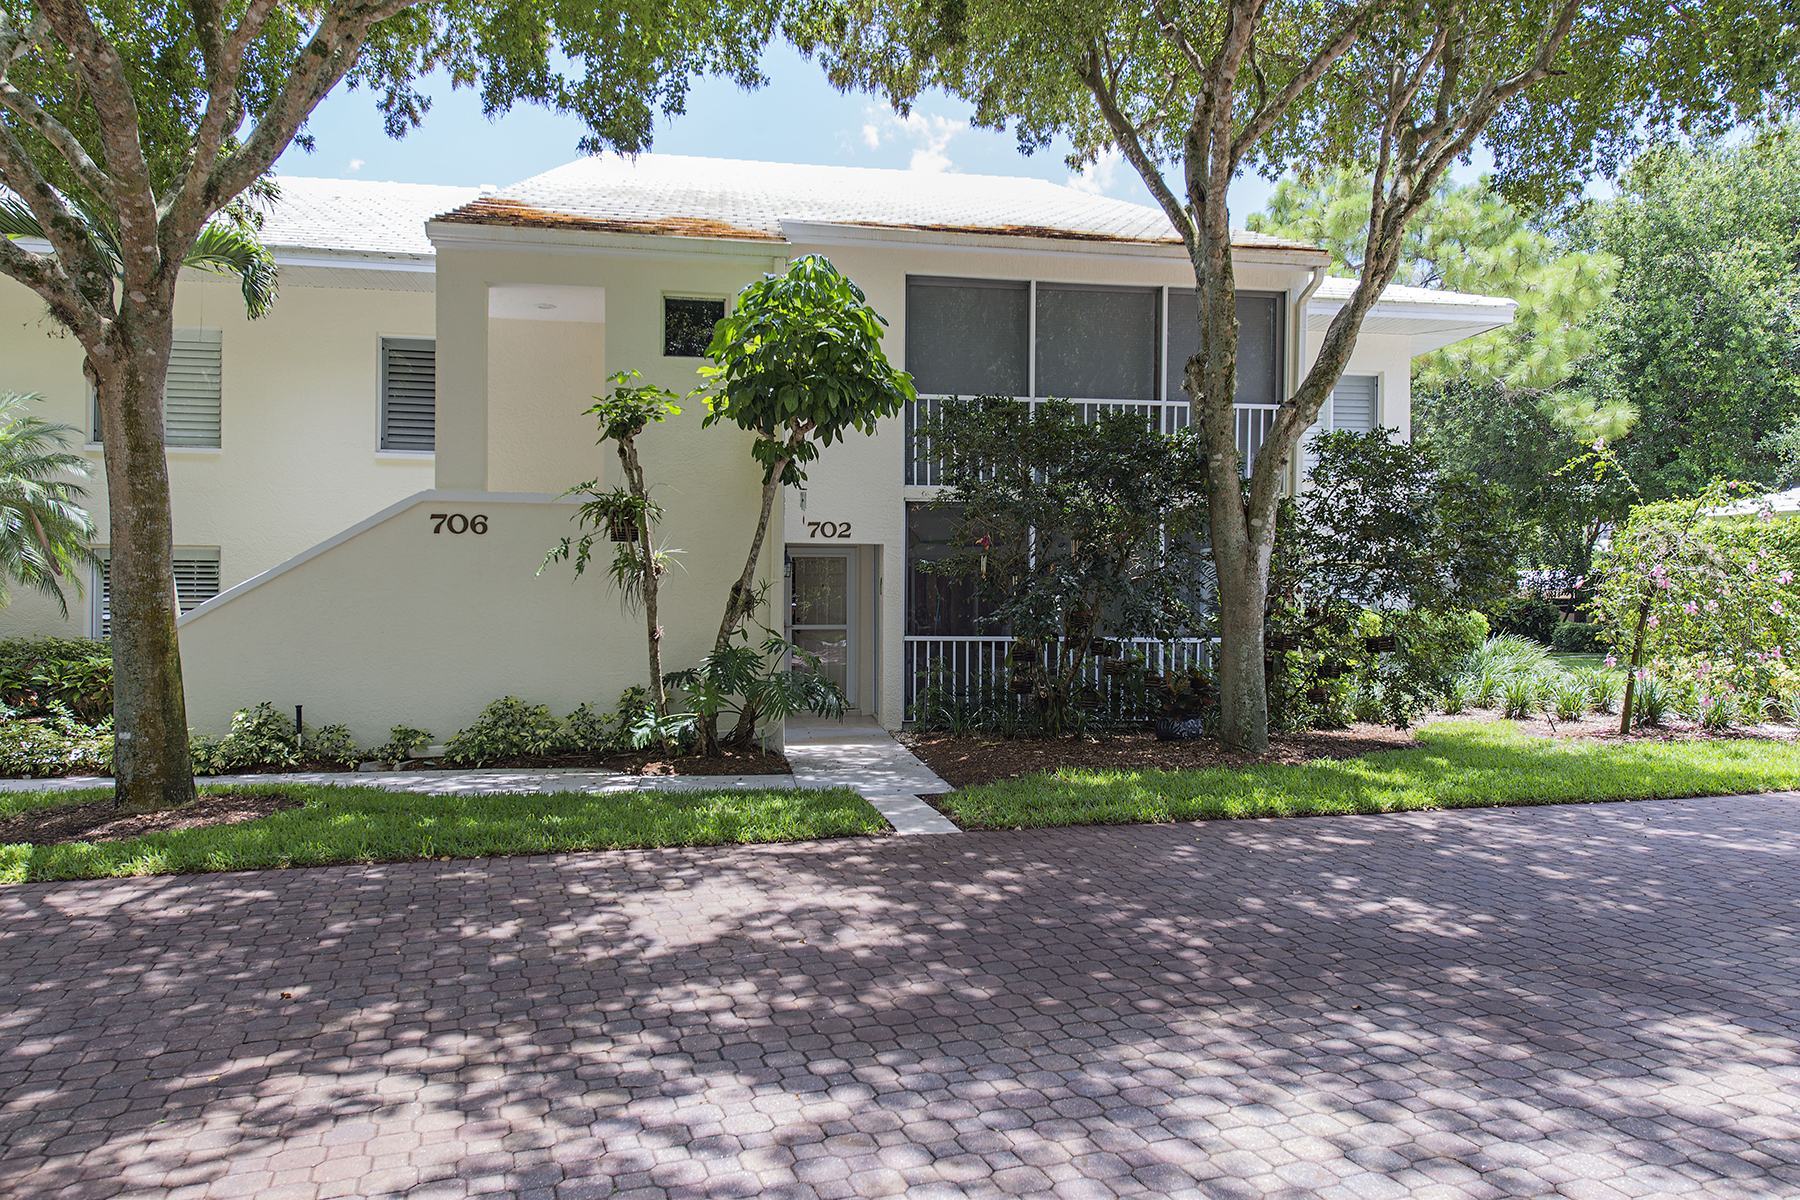 Condominium for Sale at PELICAN BAY - WILLOW BROOK 780 Willowbrook Dr 702 Naples, Florida 34108 United States